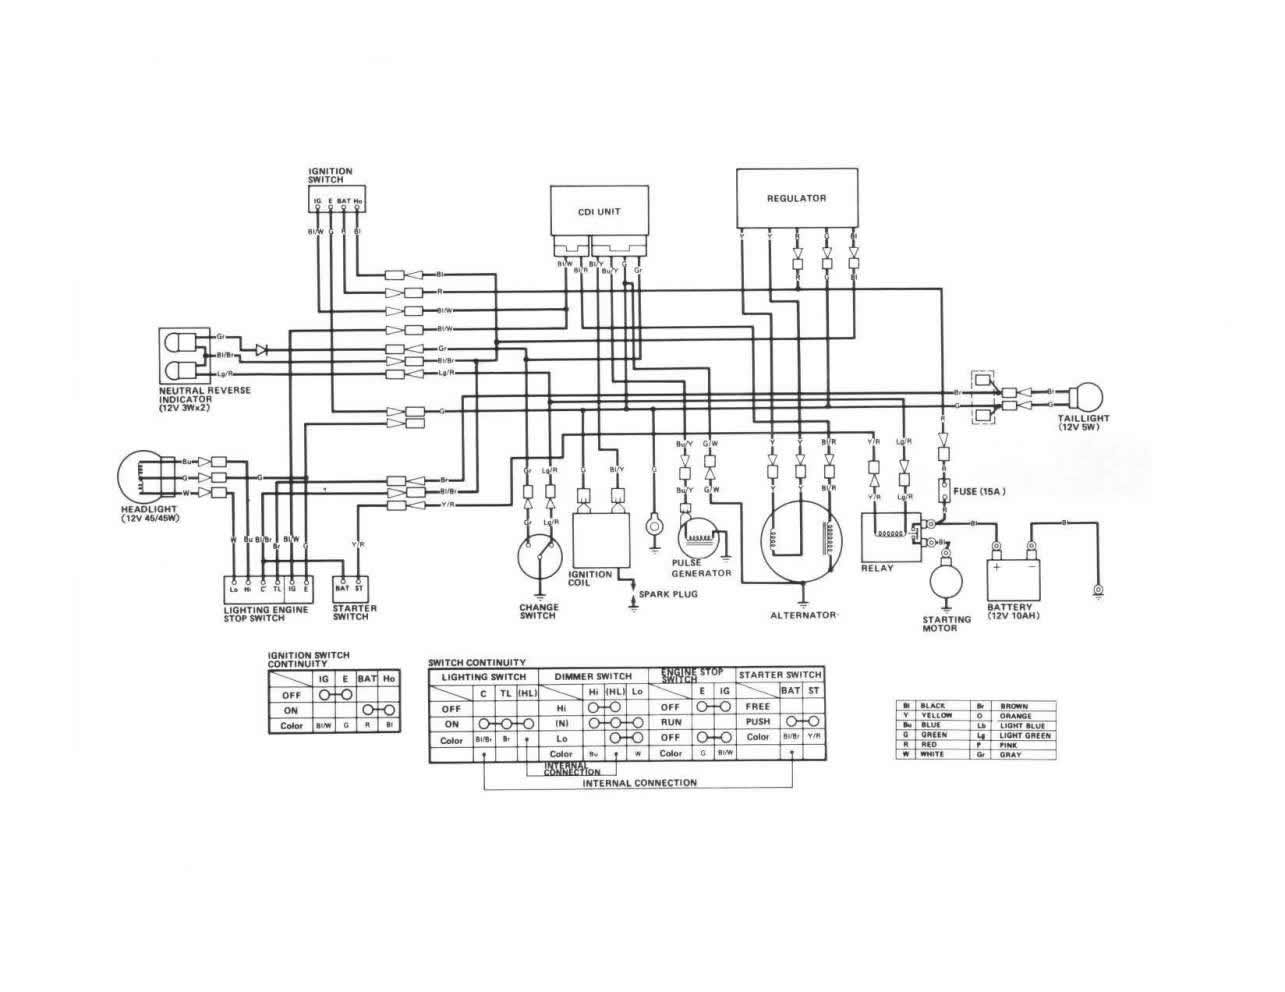 [DIAGRAM] 90cc Raider Mini Wiring Diagram FULL Version HD